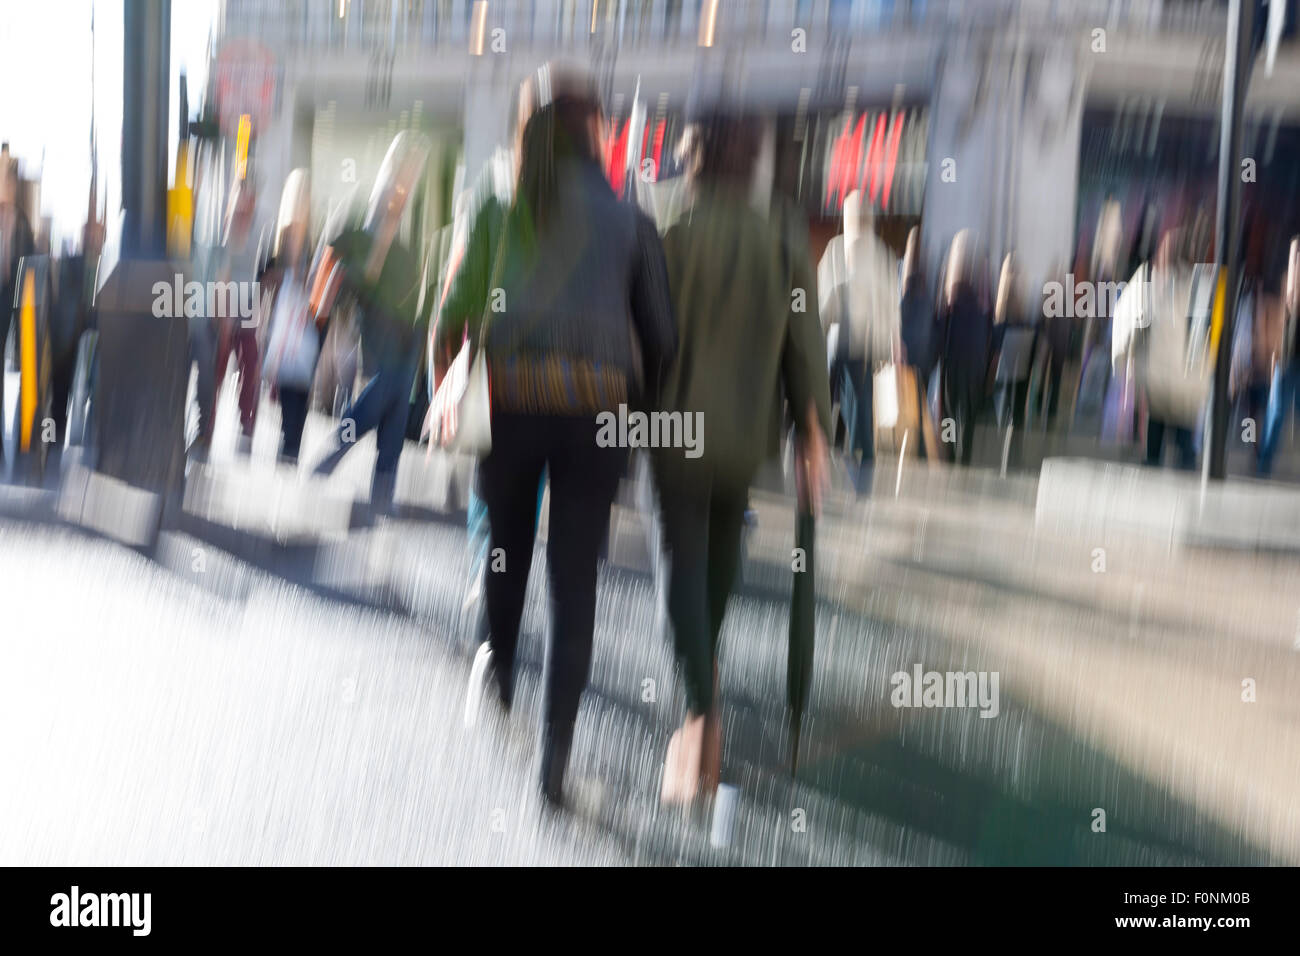 Urban move people walking in city motion blur zoom effect stock photo royalty free image - Moviendo perchas ...